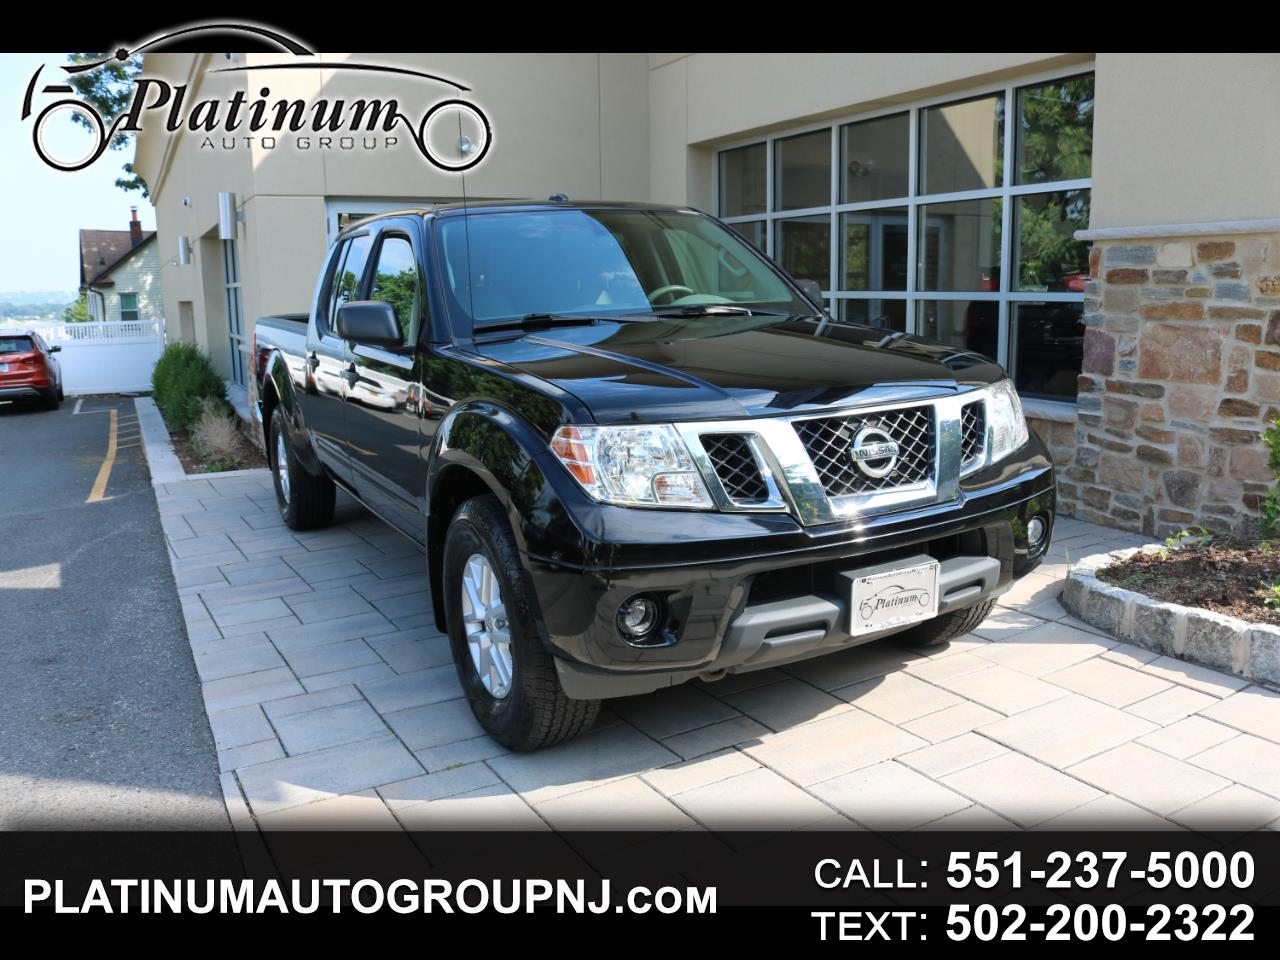 2014 Nissan Frontier 4WD Crew Cab LWB Auto SV